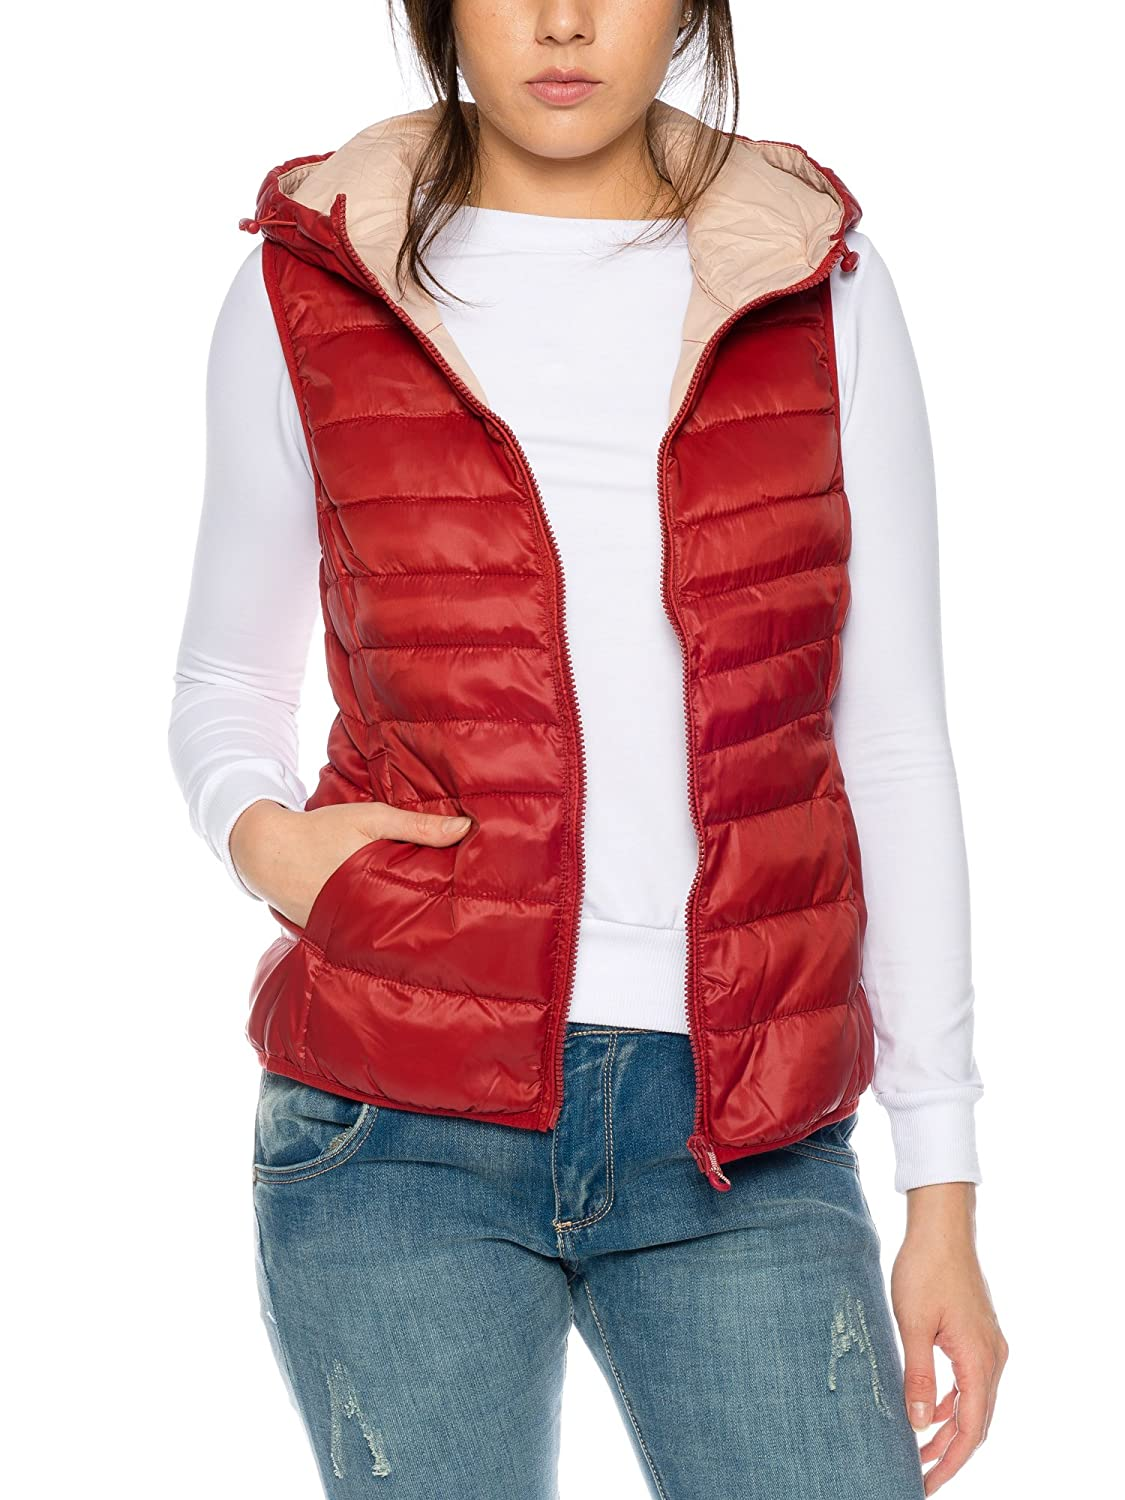 Only Onltahoe AW Quilted Waistcoat CC Otw, Chaleco para Mujer, Gris (Silver Detail:Lining Blackened Pearl), 36 (Talla del Fabricante: Small)